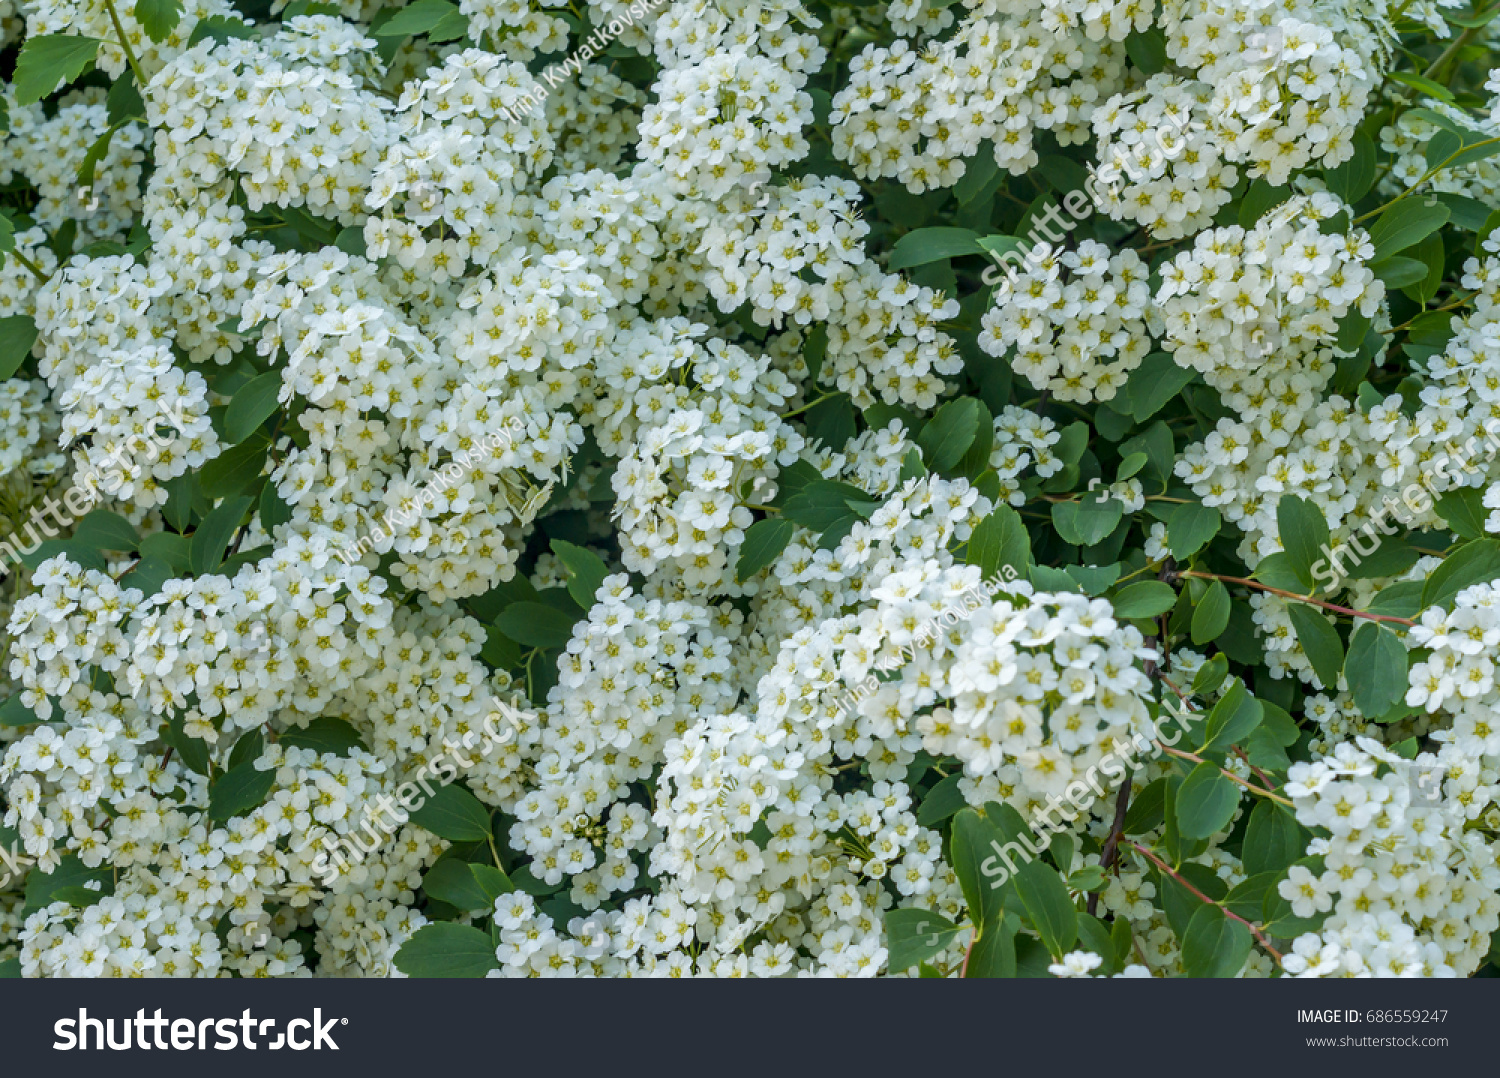 Background blooming small white flowers on stock photo edit now background of blooming small white flowers on bush mightylinksfo